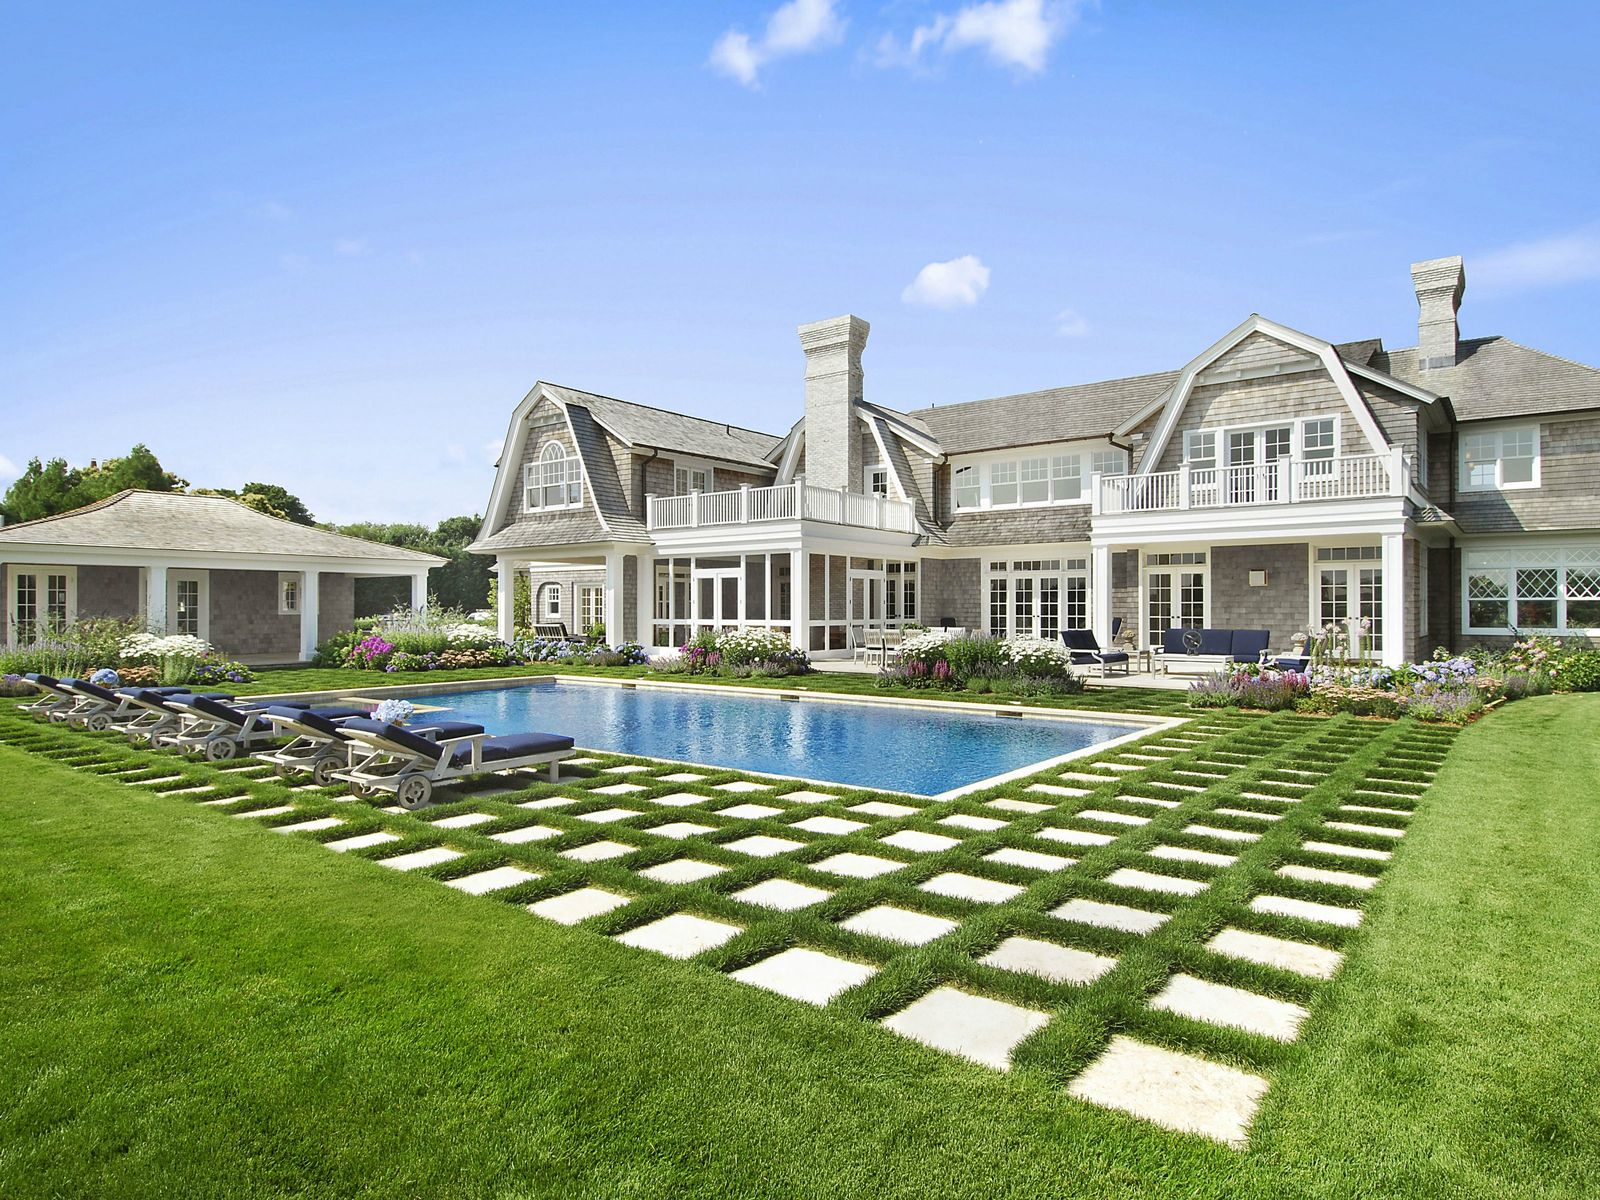 Elegant New Manor Home, Water Mill NY Single Family Home - Hamptons Real Estate